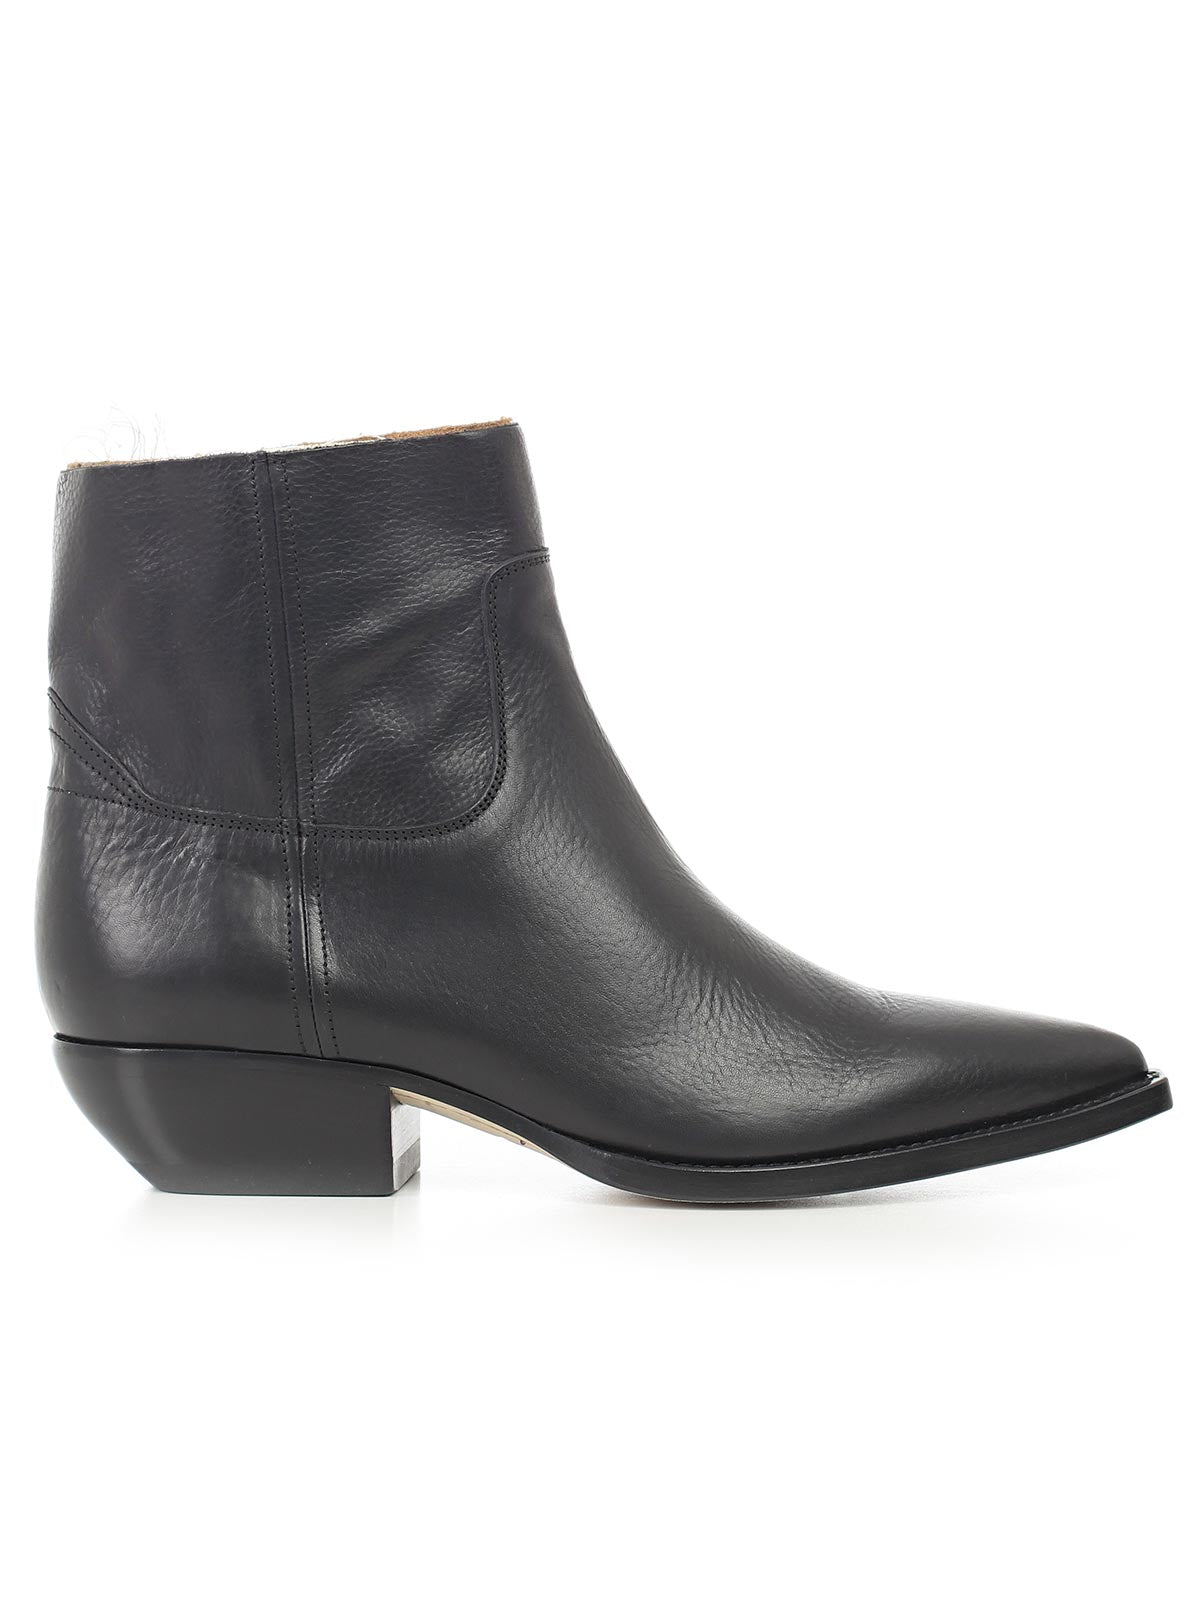 SAINT LAURENT POINTED LEATHER ANKLE BOOTS